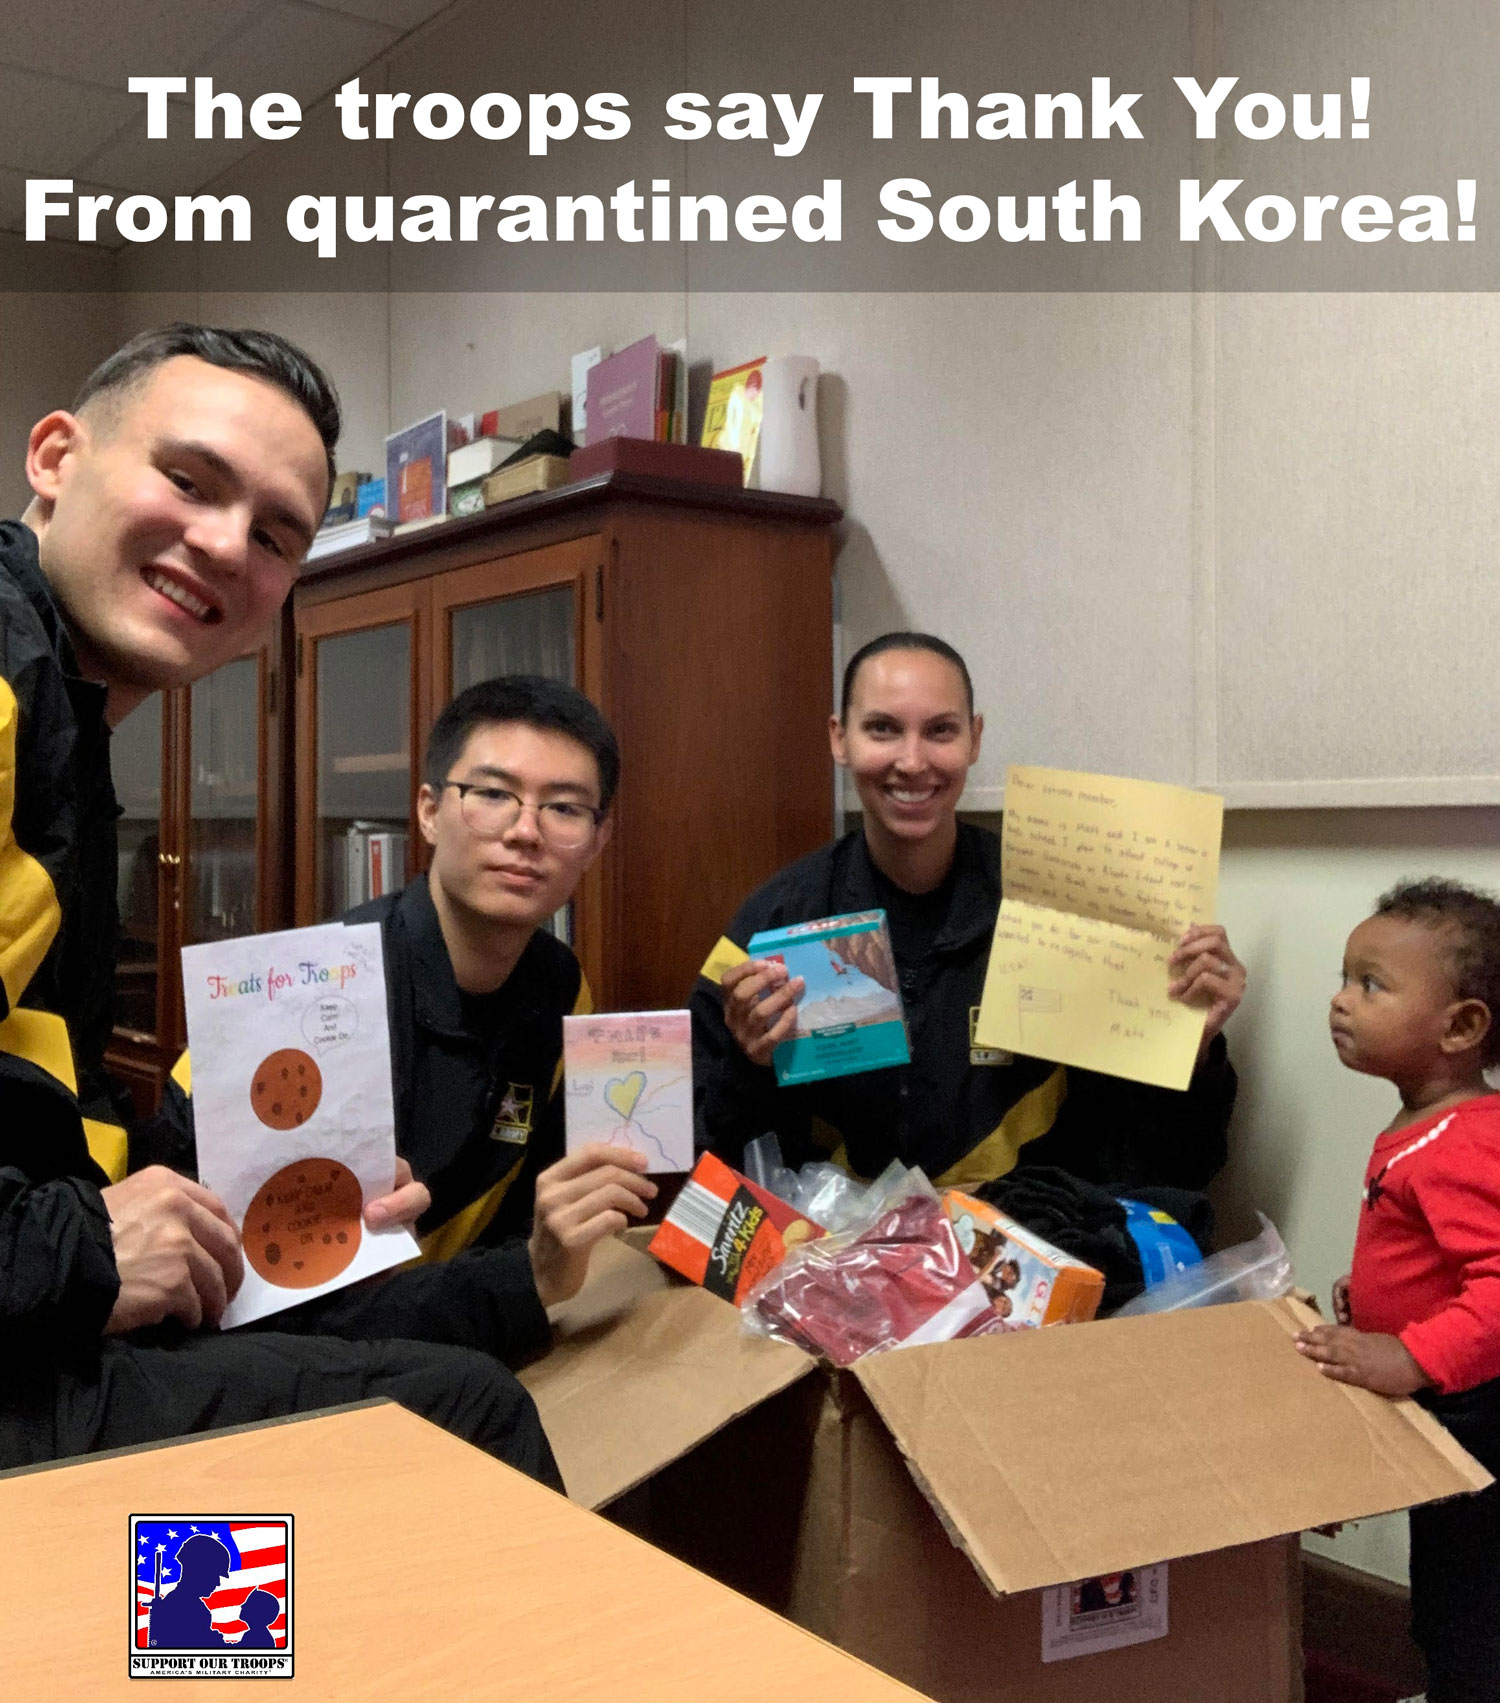 troops say thank you from quarantined south korea - support our troops